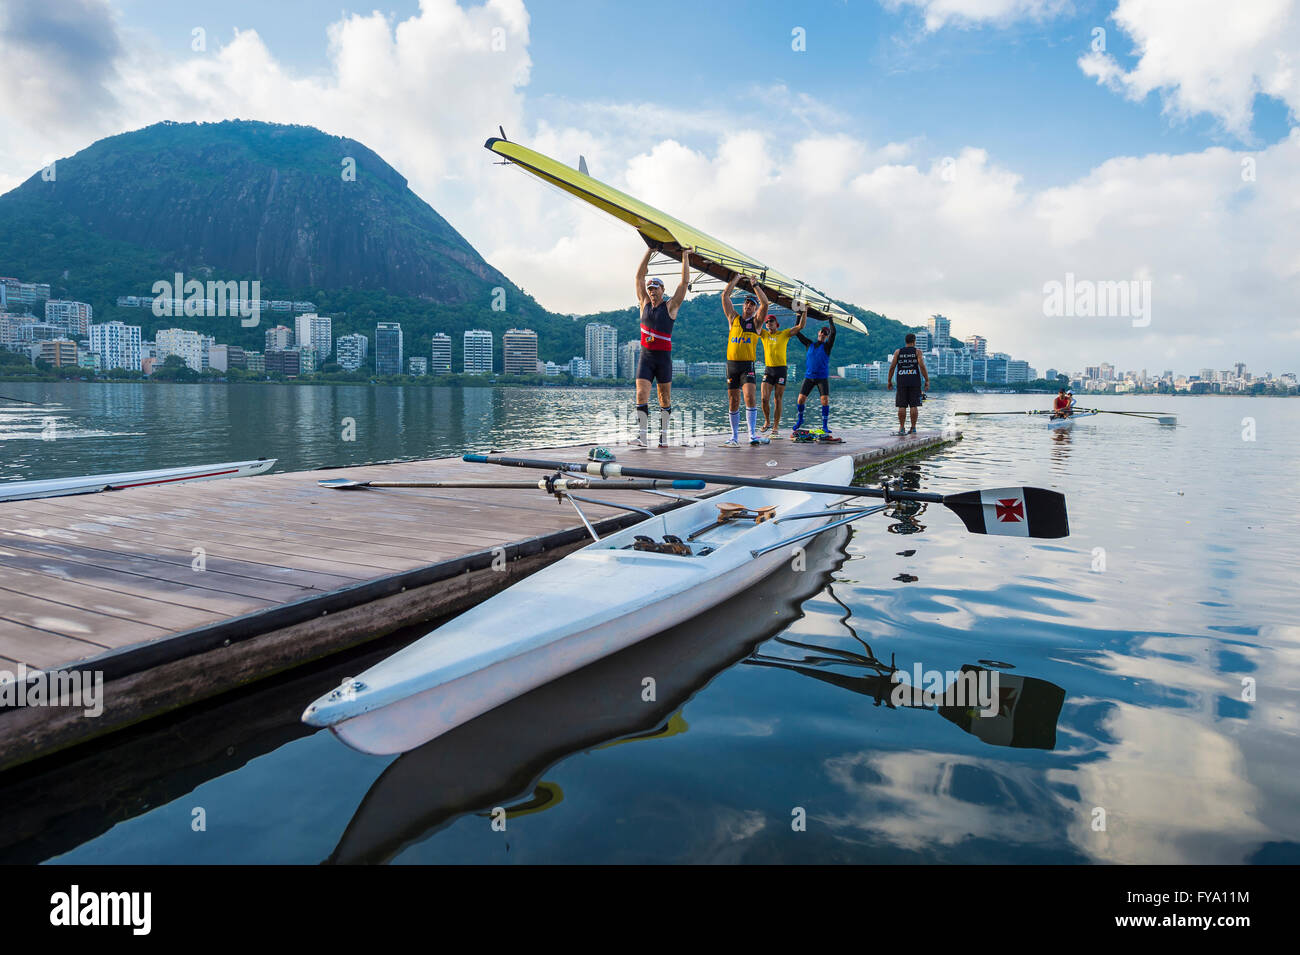 RIO DE JANEIRO - APRIL 1, 2016: Members of the Vasco da Gama rowing club carry their boat at Lagoa Rodrigo de Freitas. - Stock Image